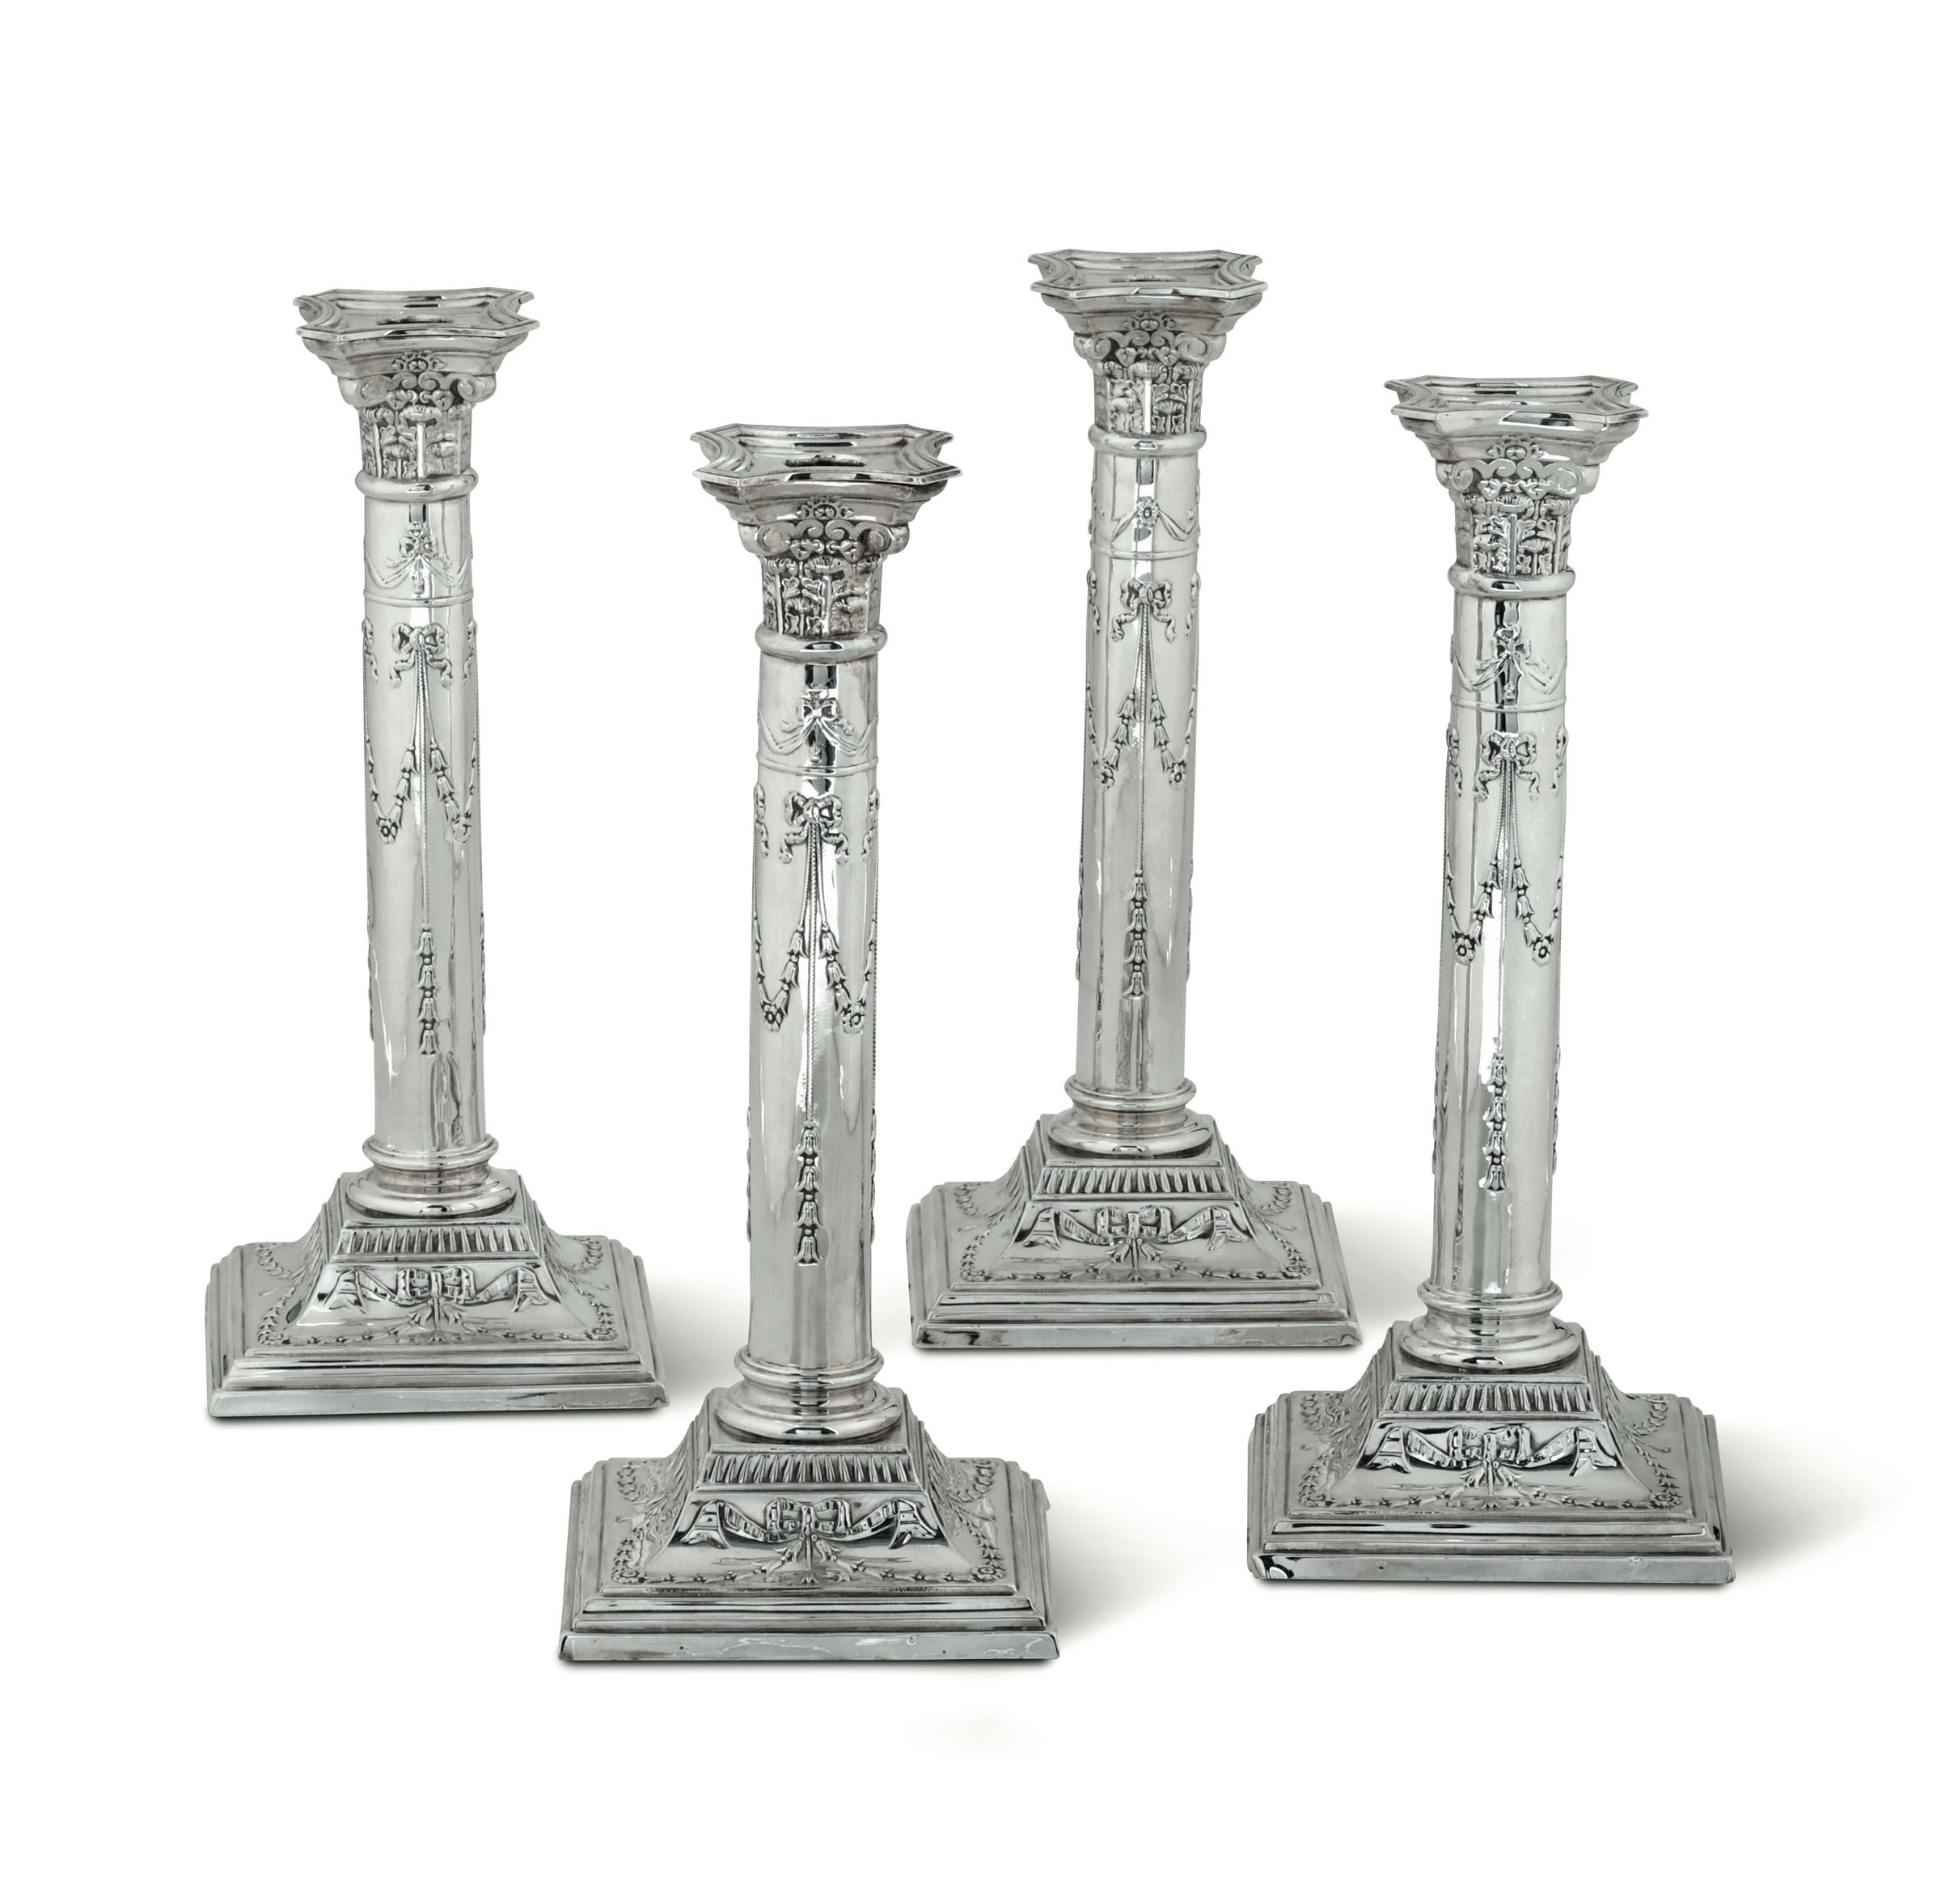 Lot 40 - Four sterling silver candlesticks, London, 1795 - Hallmarked with the London date [...]